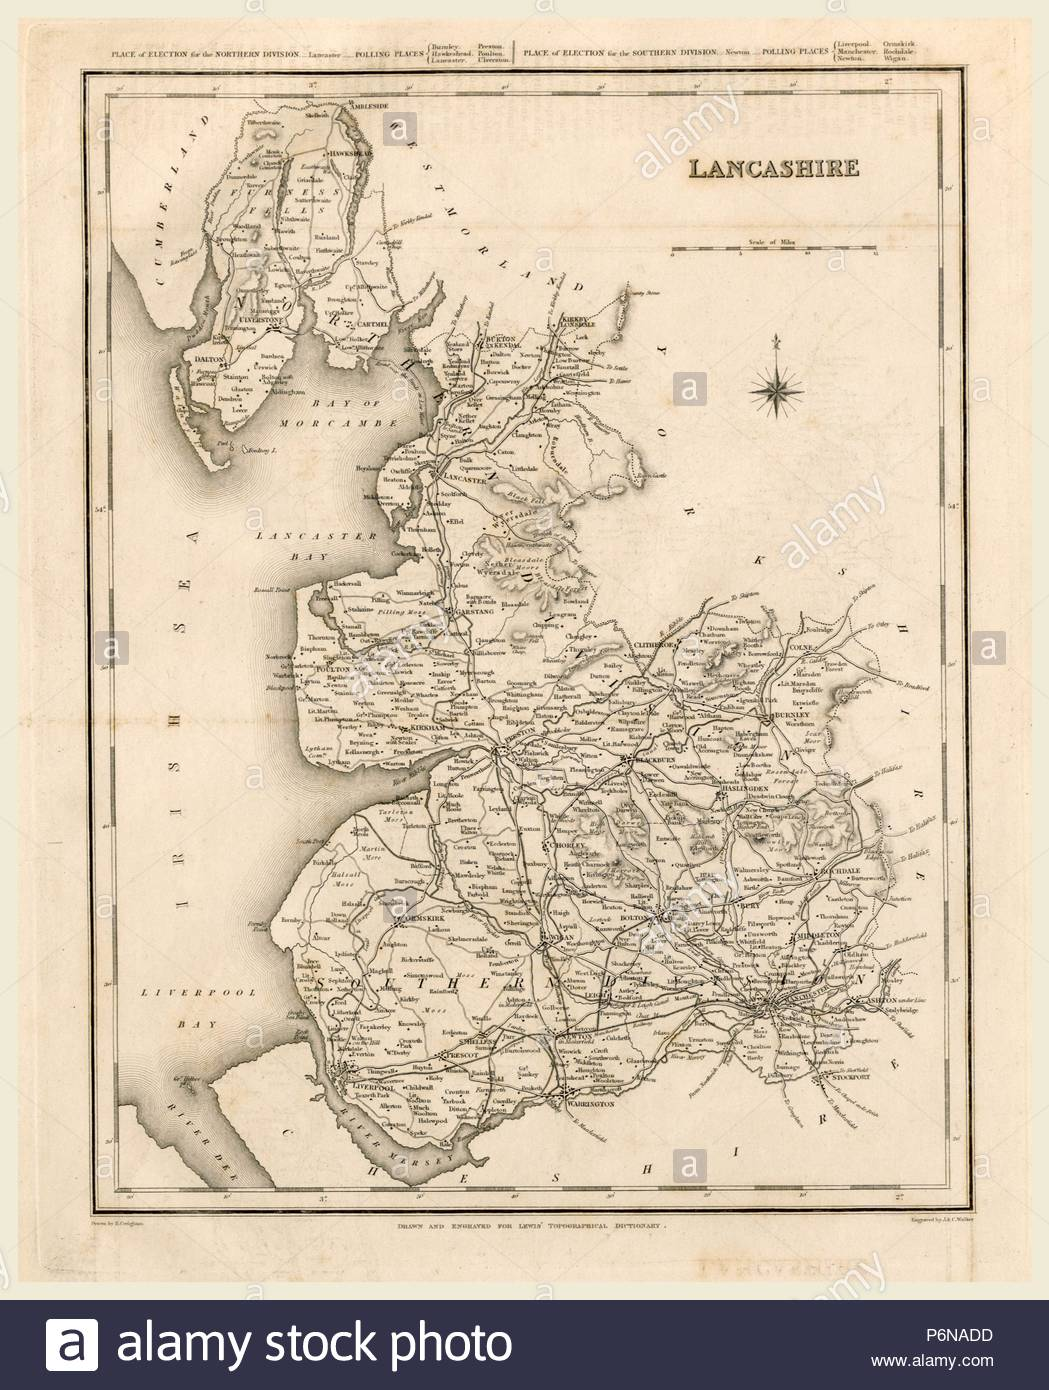 A Topographical Dictionary of England, Lancashire, map, 19th century engraving. - Stock Image